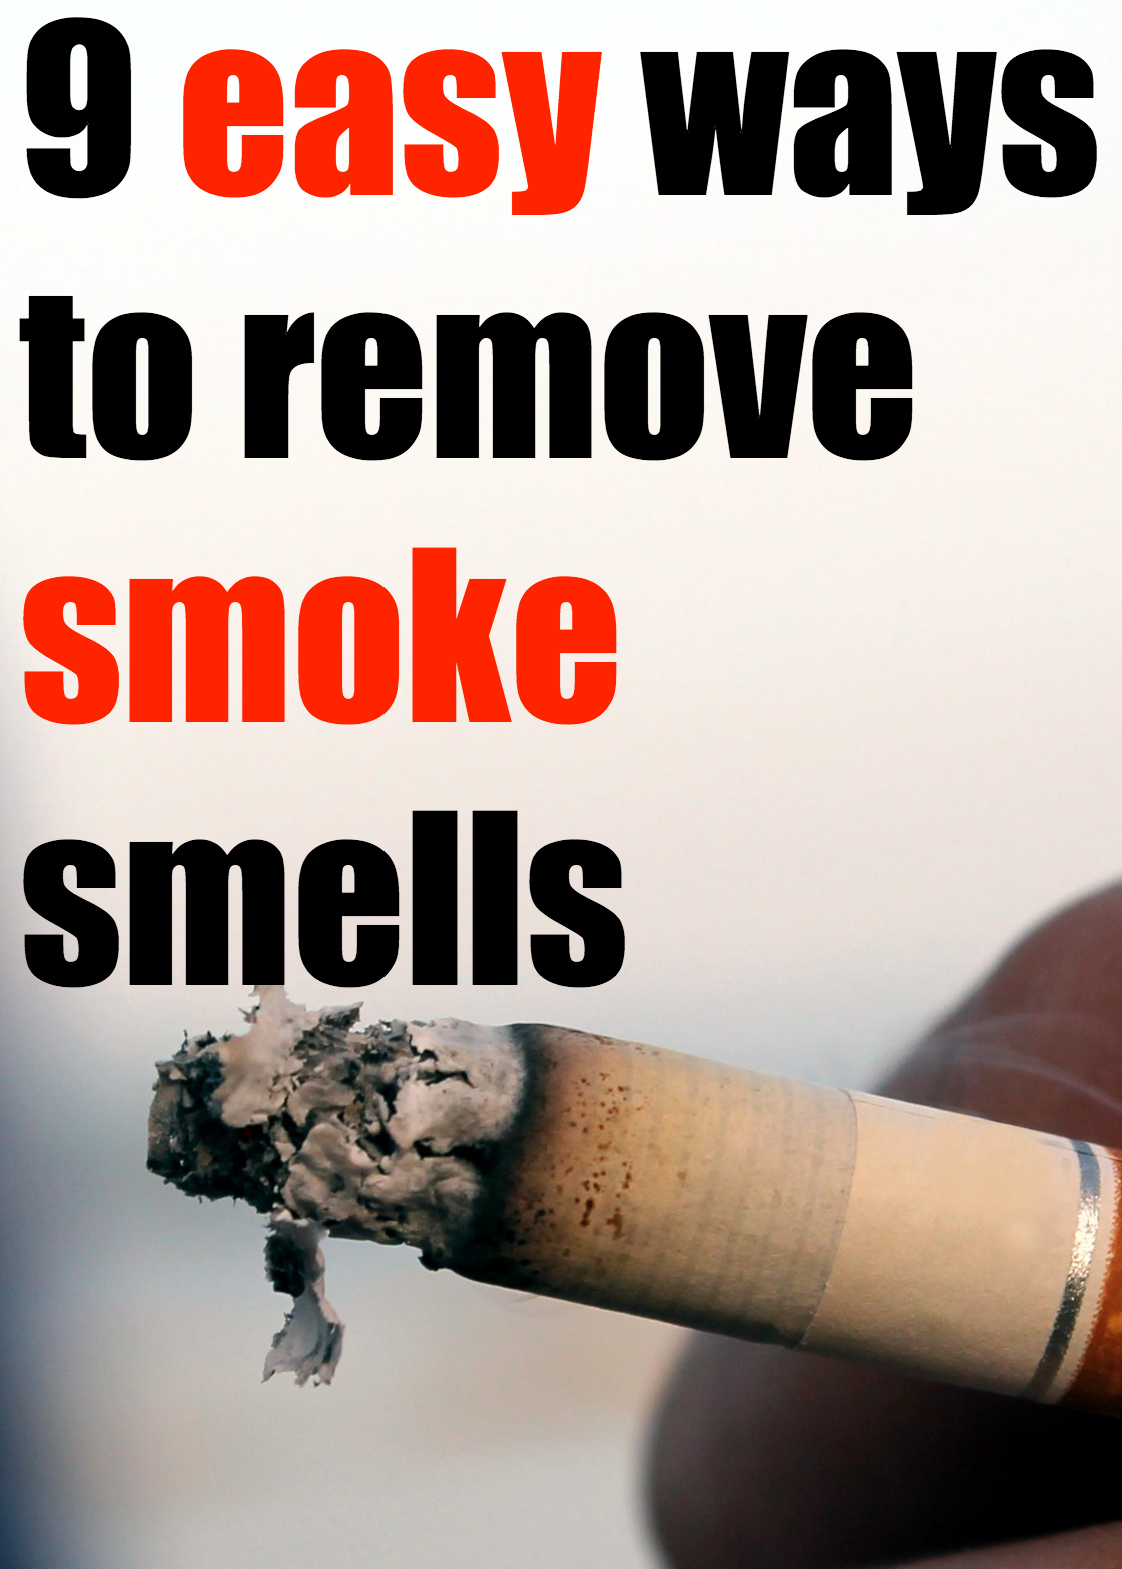 Get rid of cigarette smell in house - Rmove Cigarrette Smoke Smells